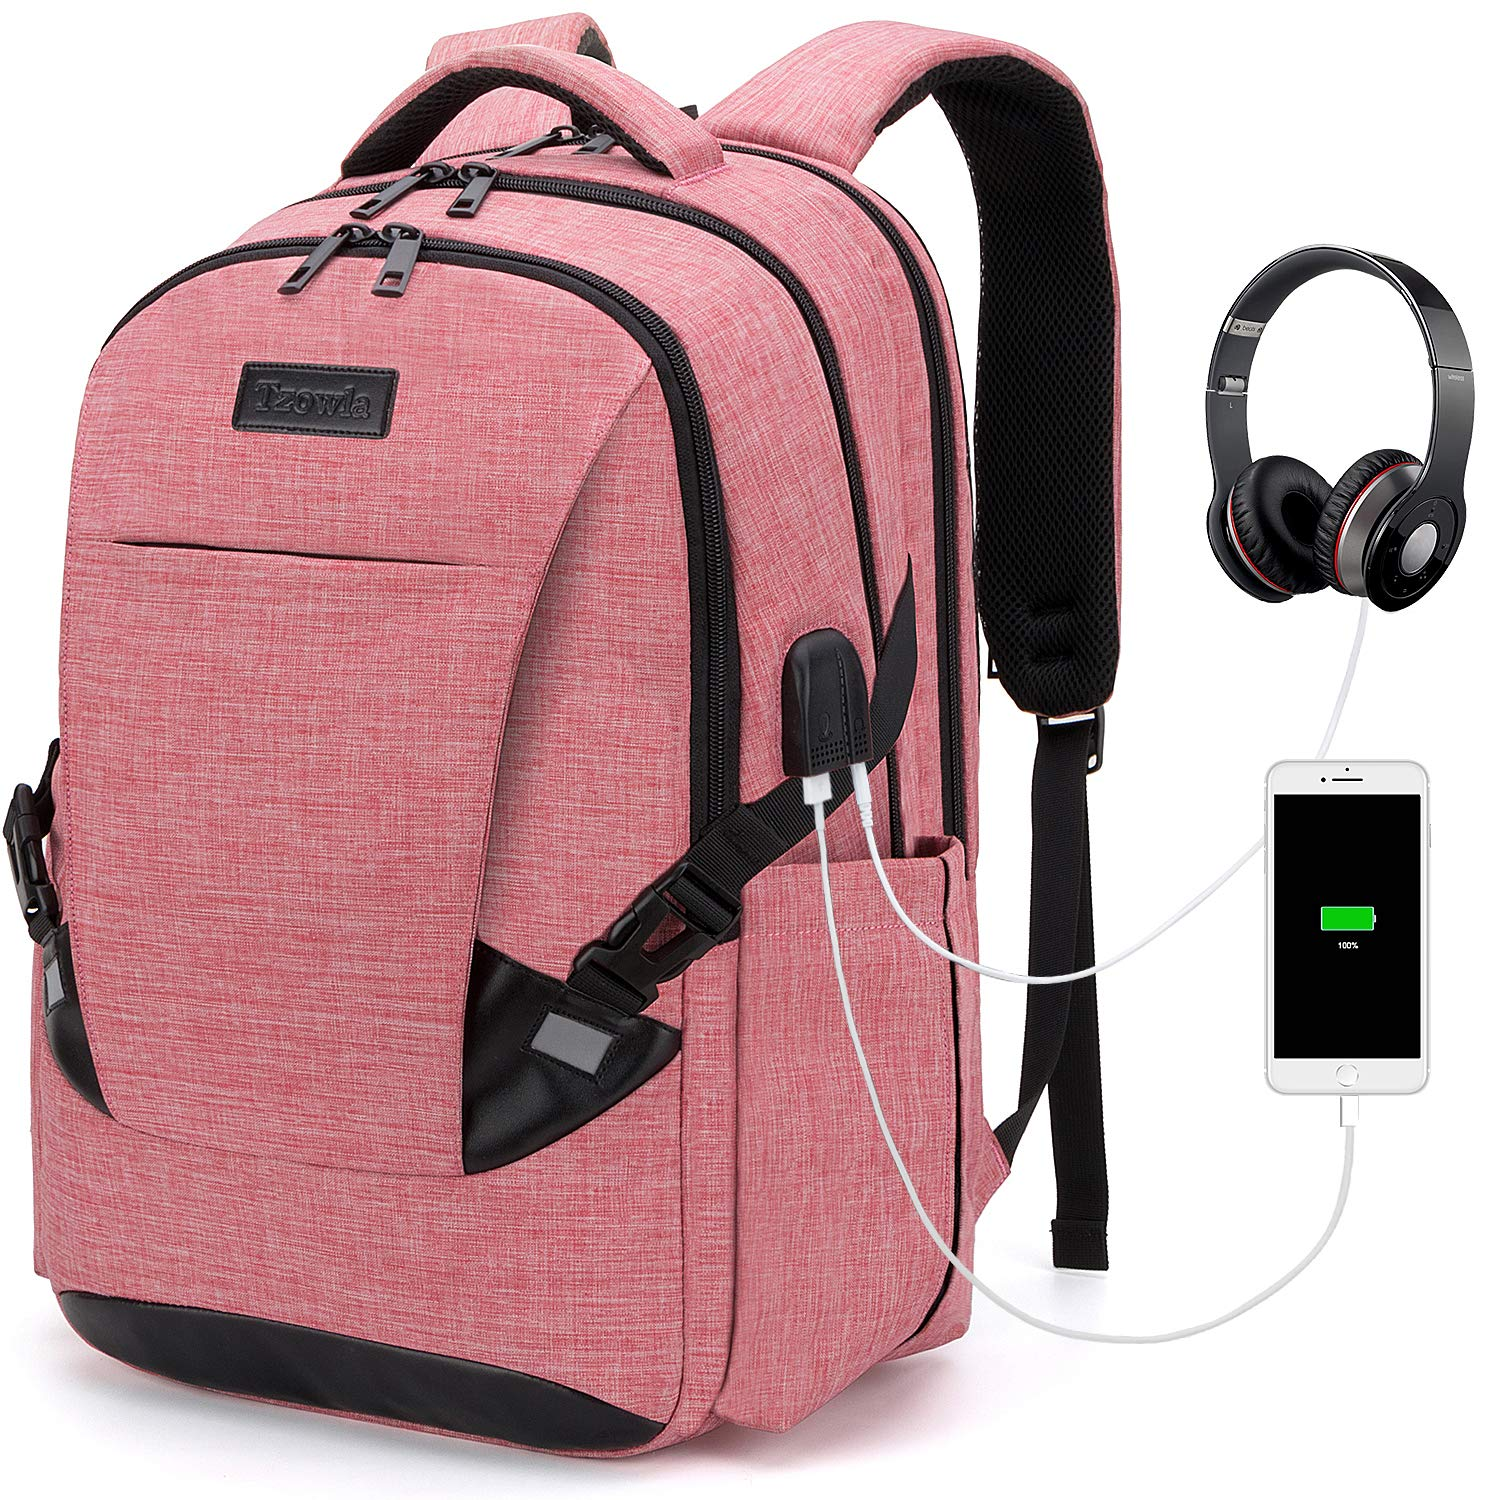 Tzowla Travel Laptop Backpack Waterproof Business Work School College Bag Daypack with USB Charging&Headphone Port for Men Women Boy Girl Student Durable Luggage Backpacks Fit 15.6/17Inch(Red)